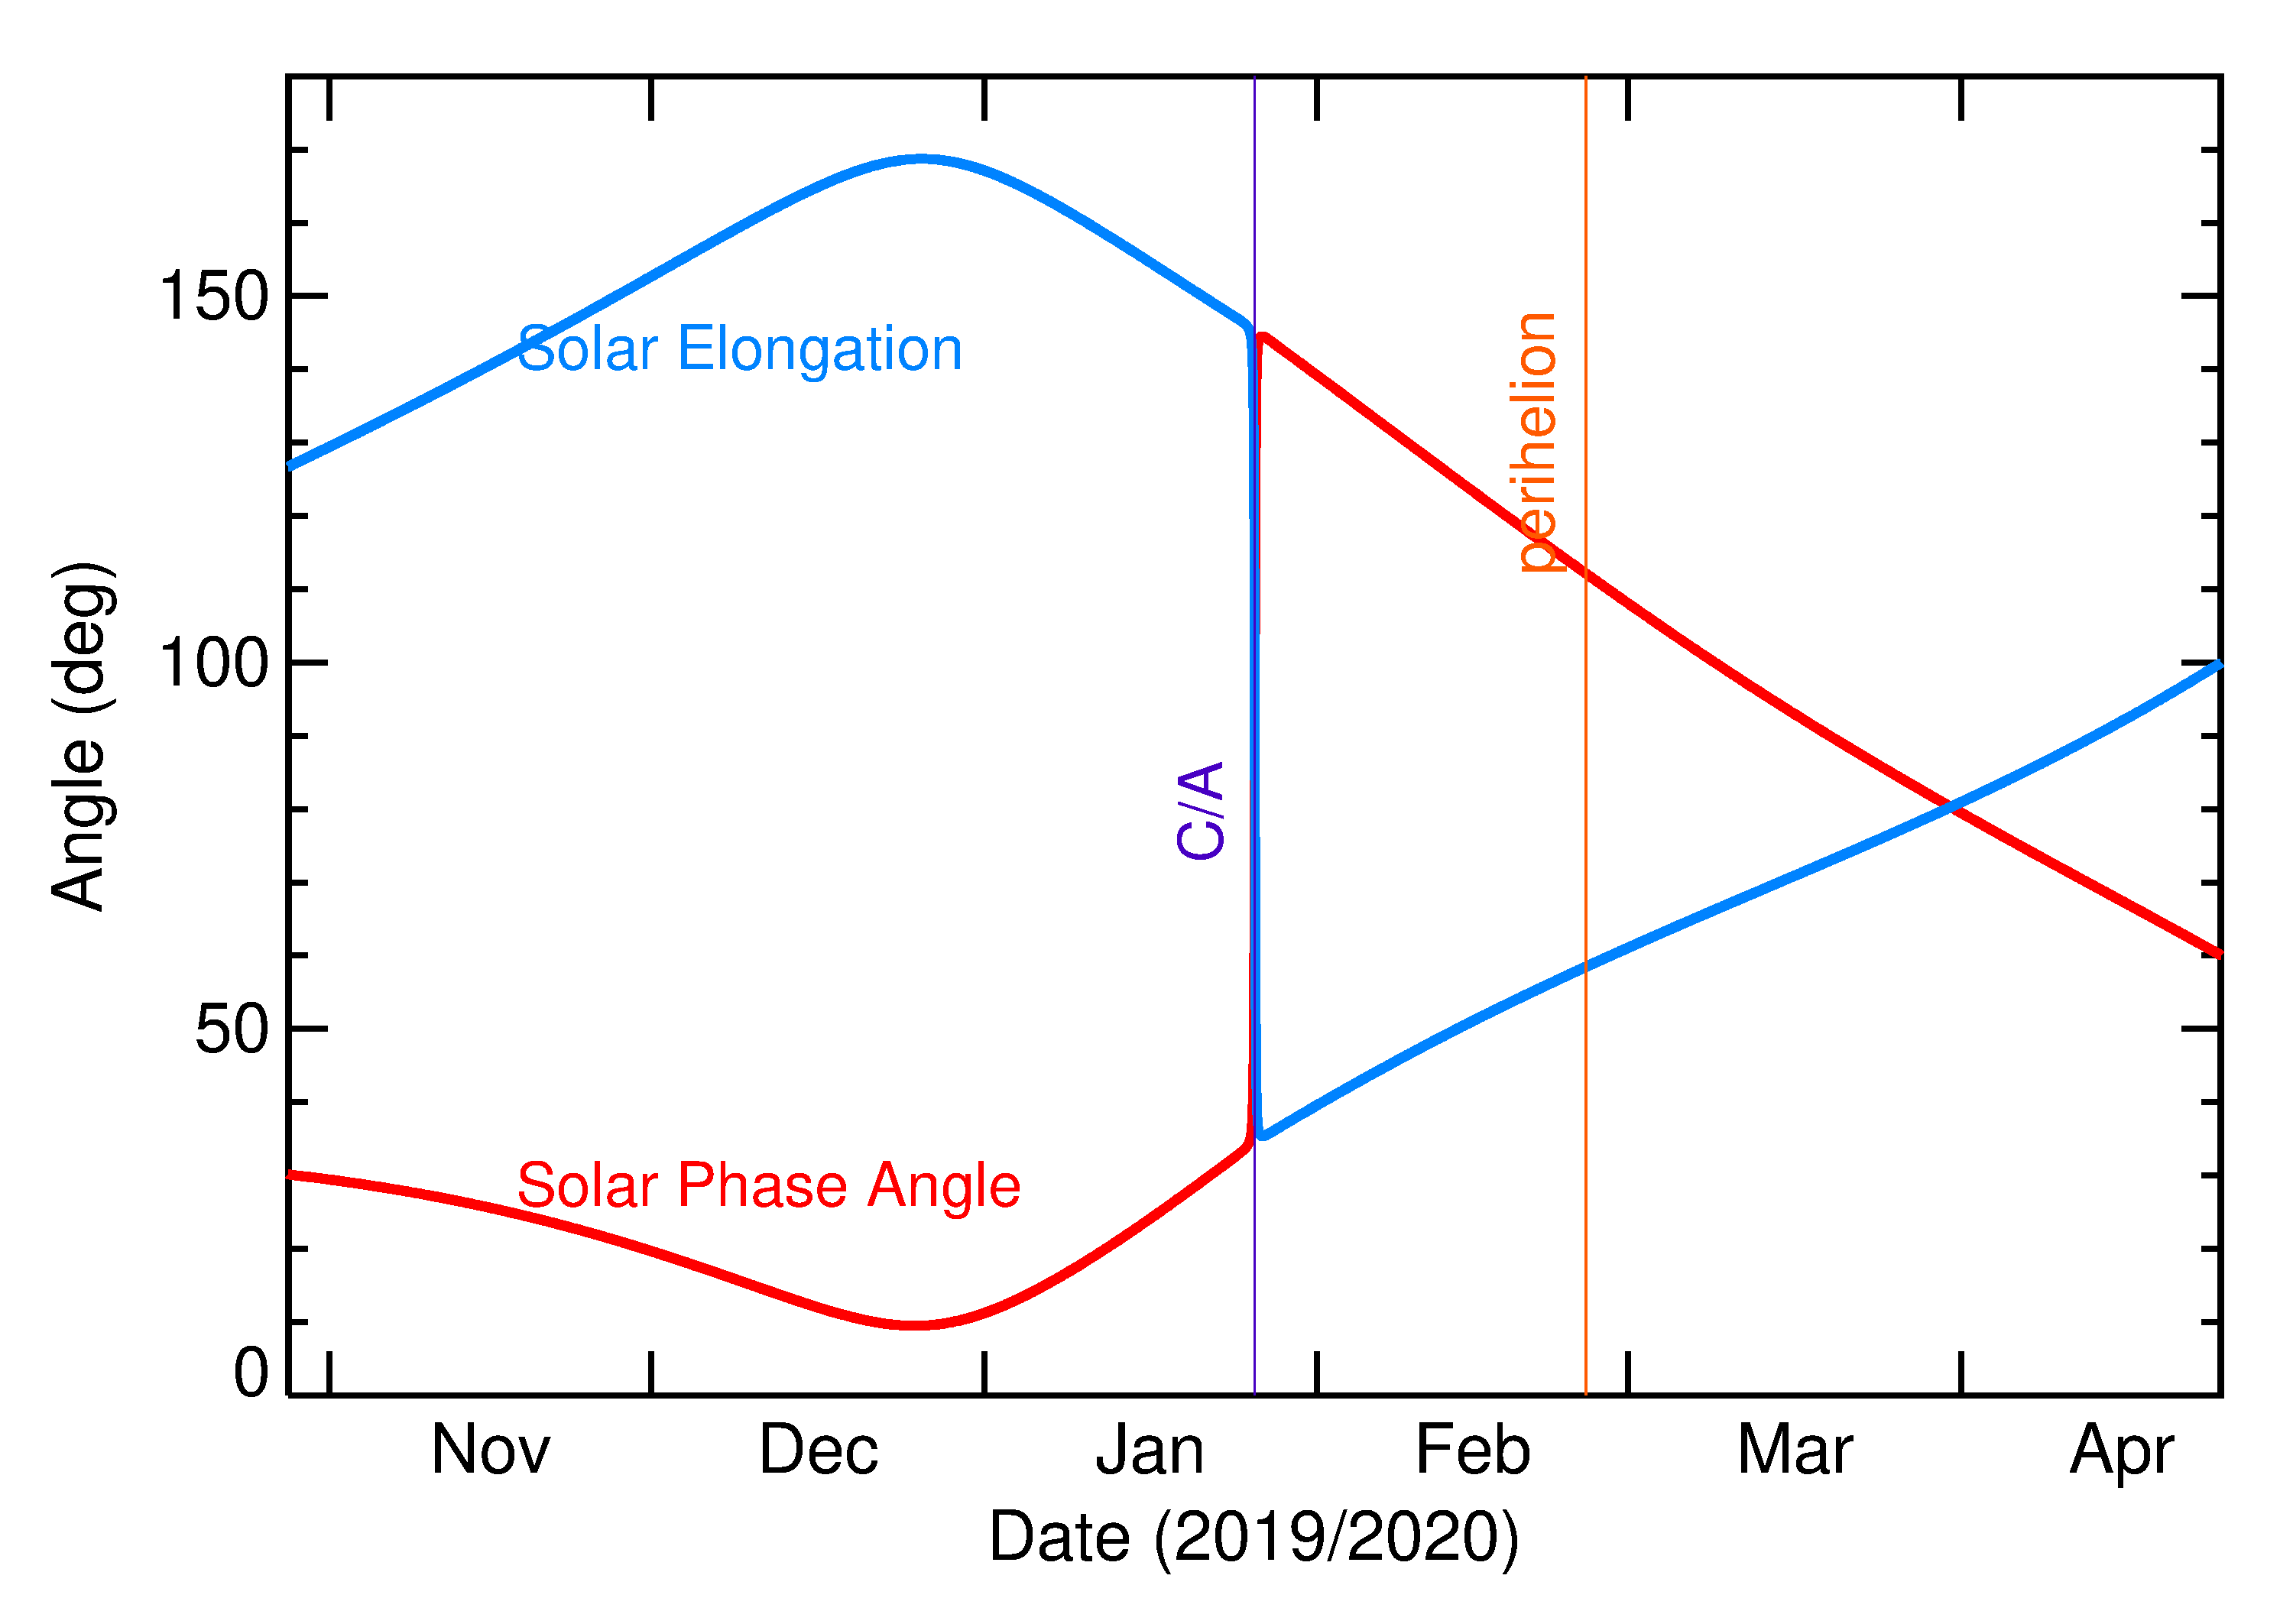 Solar Elongation and Solar Phase Angle of 2020 BH6 in the months around closest approach